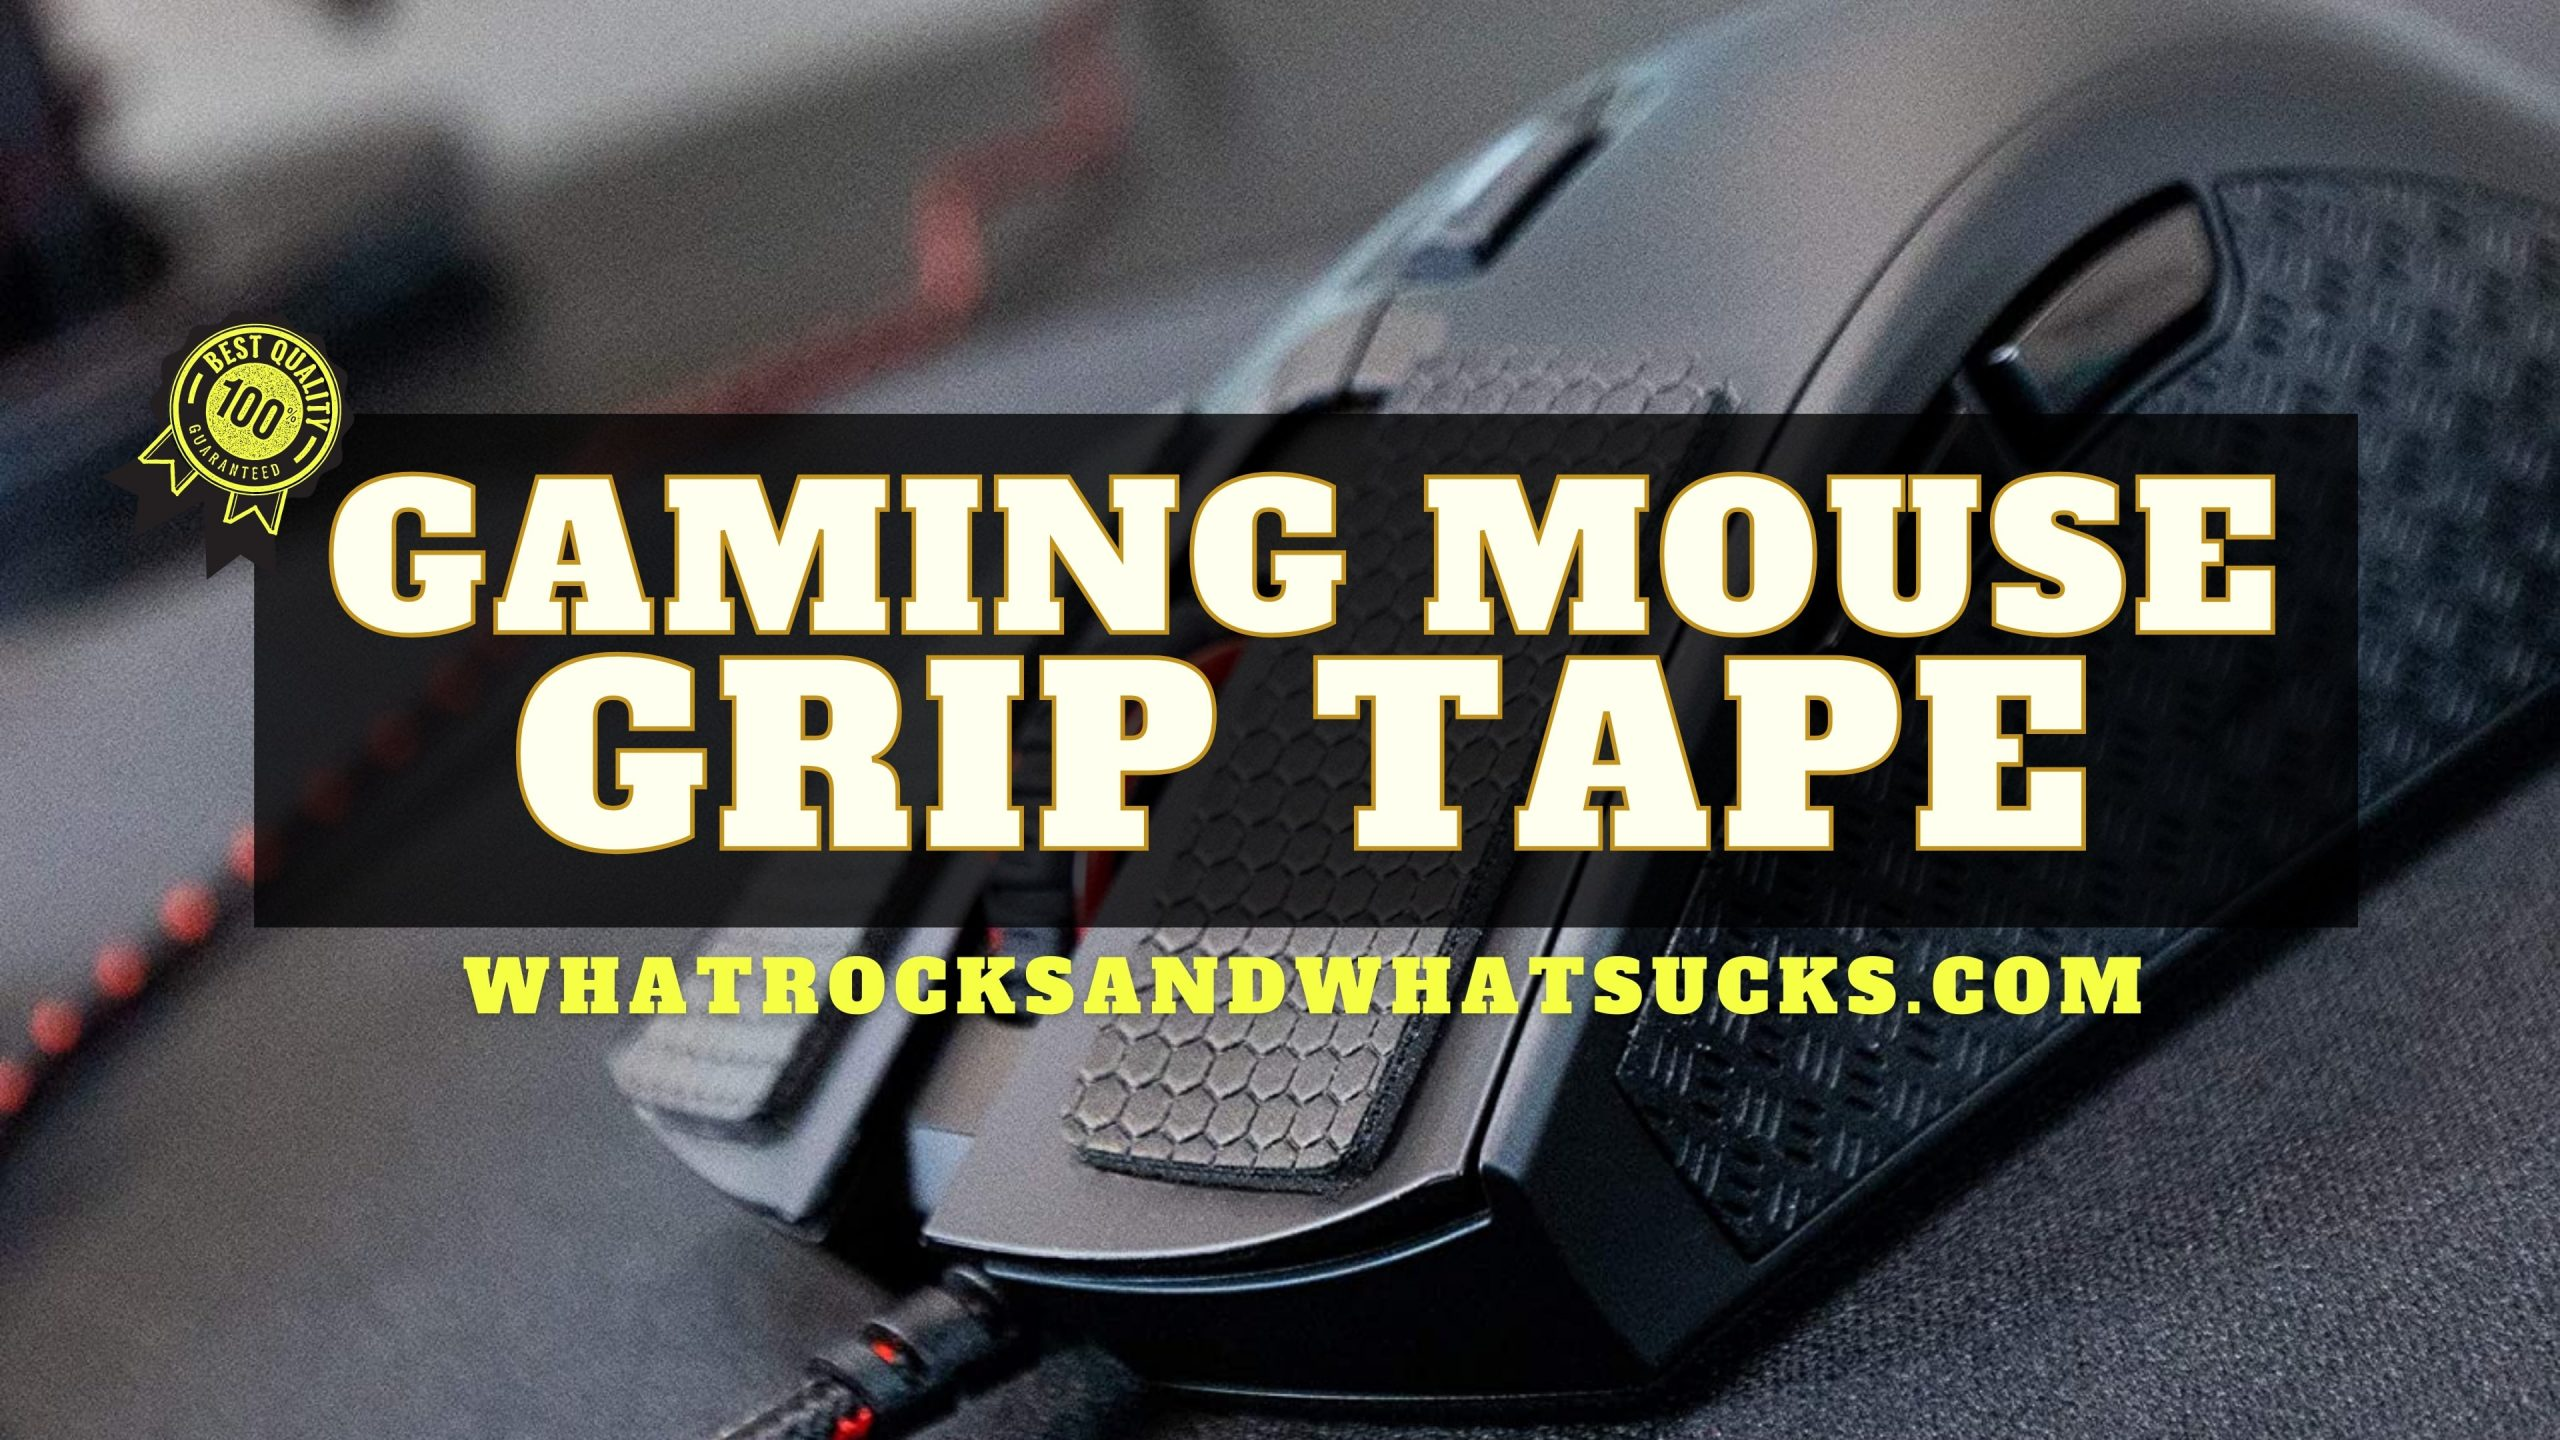 GAMING MOUSE GRIP TAPE